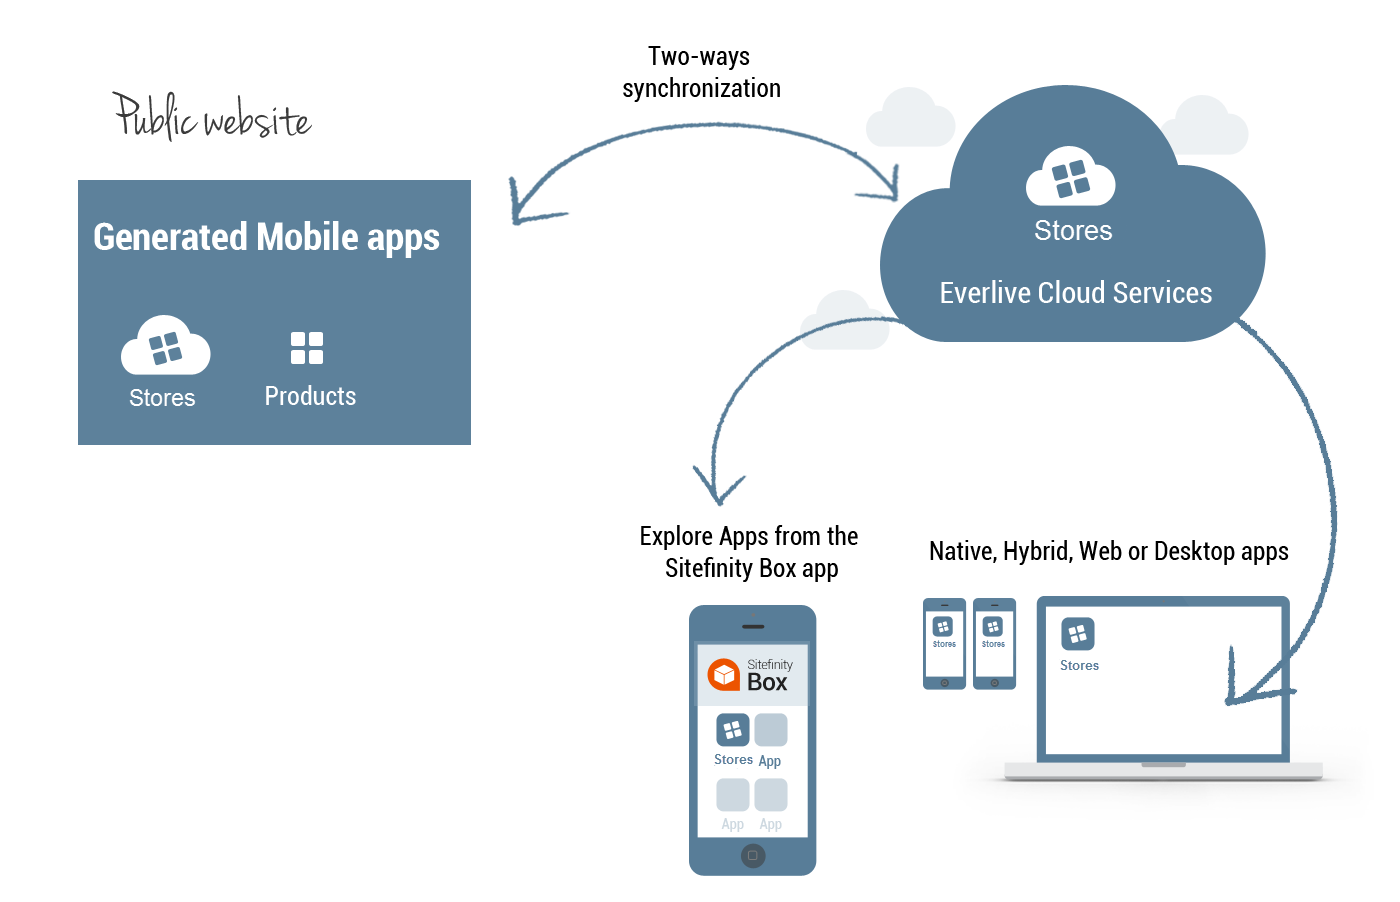 Sitefinity Mobile Hybrid Cloud Solution